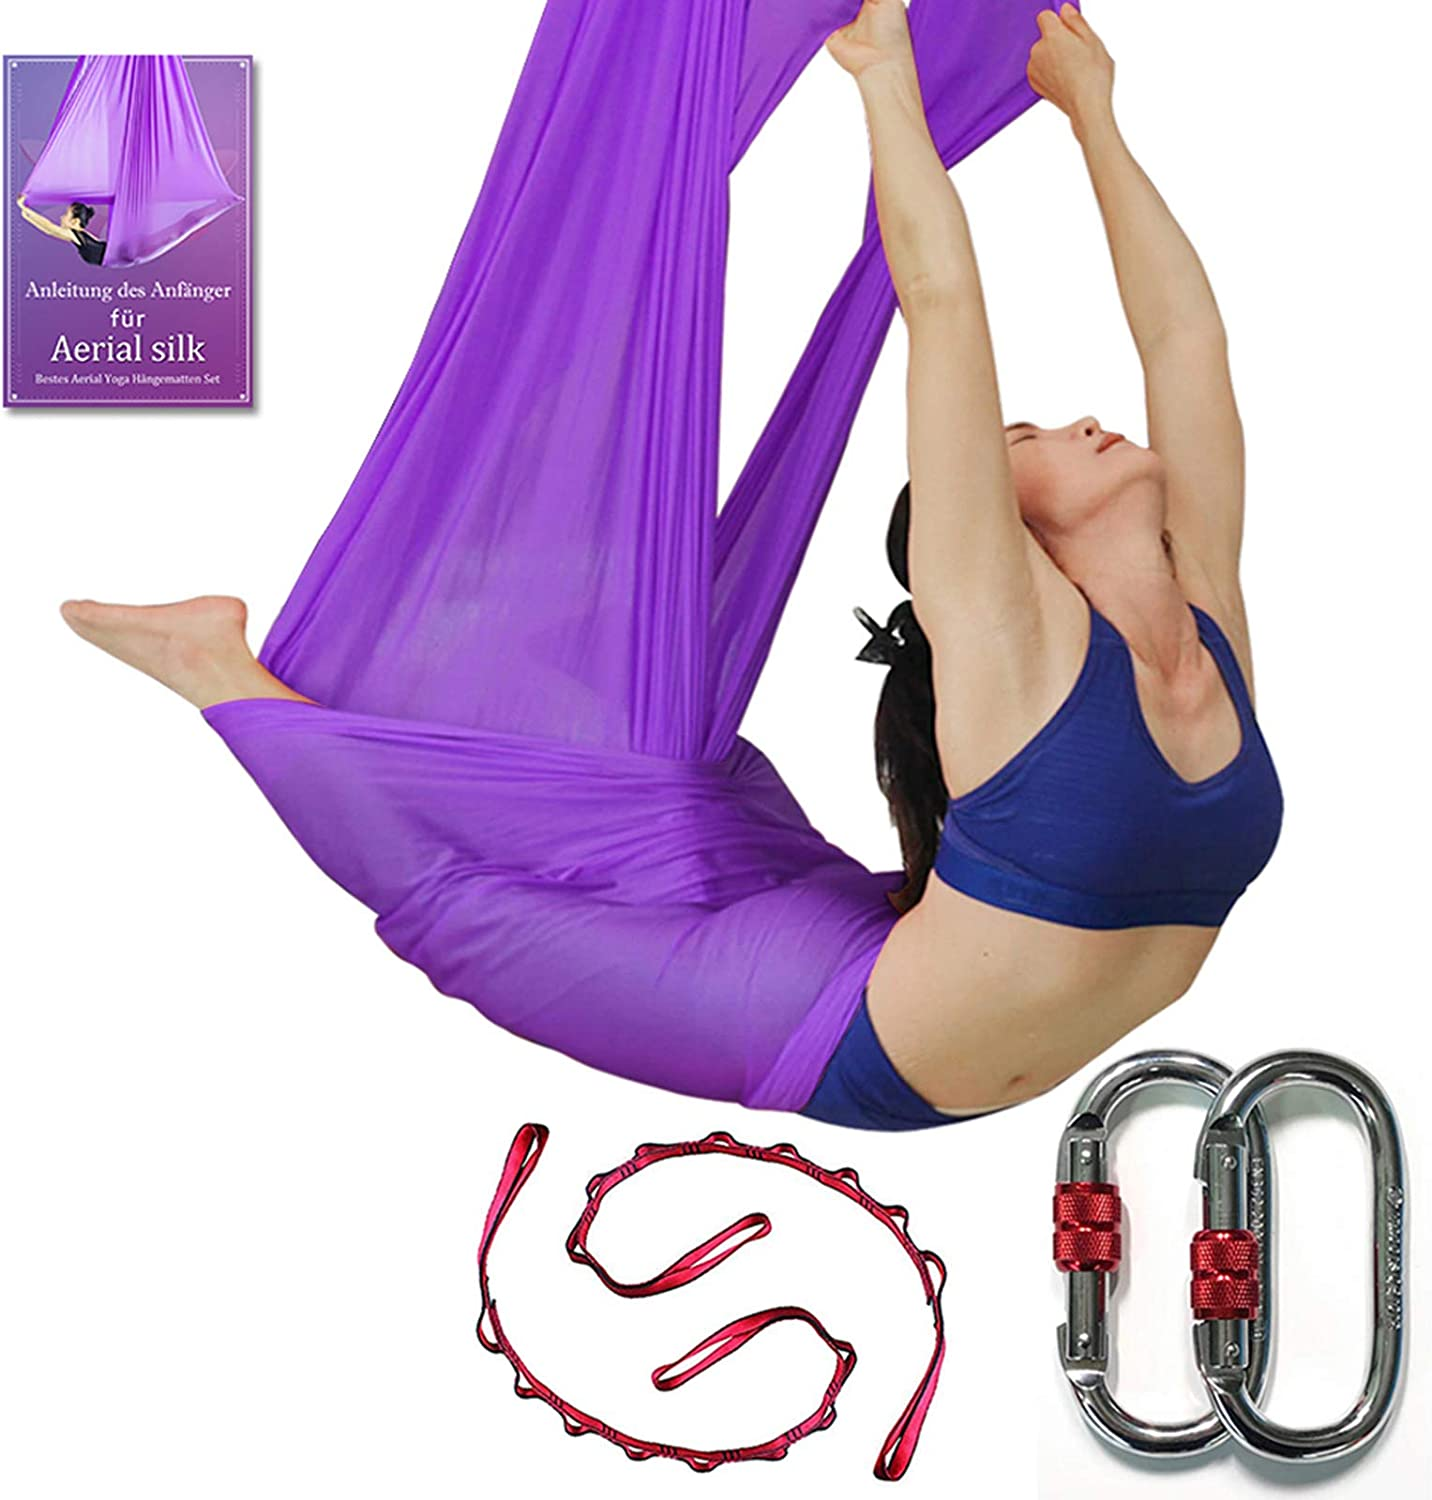 DASKING Deluxe 5m/Set Yoga Swing Aerial Yoga Hammock kit with Daisy Chains O-Ring, Fabric & Guide